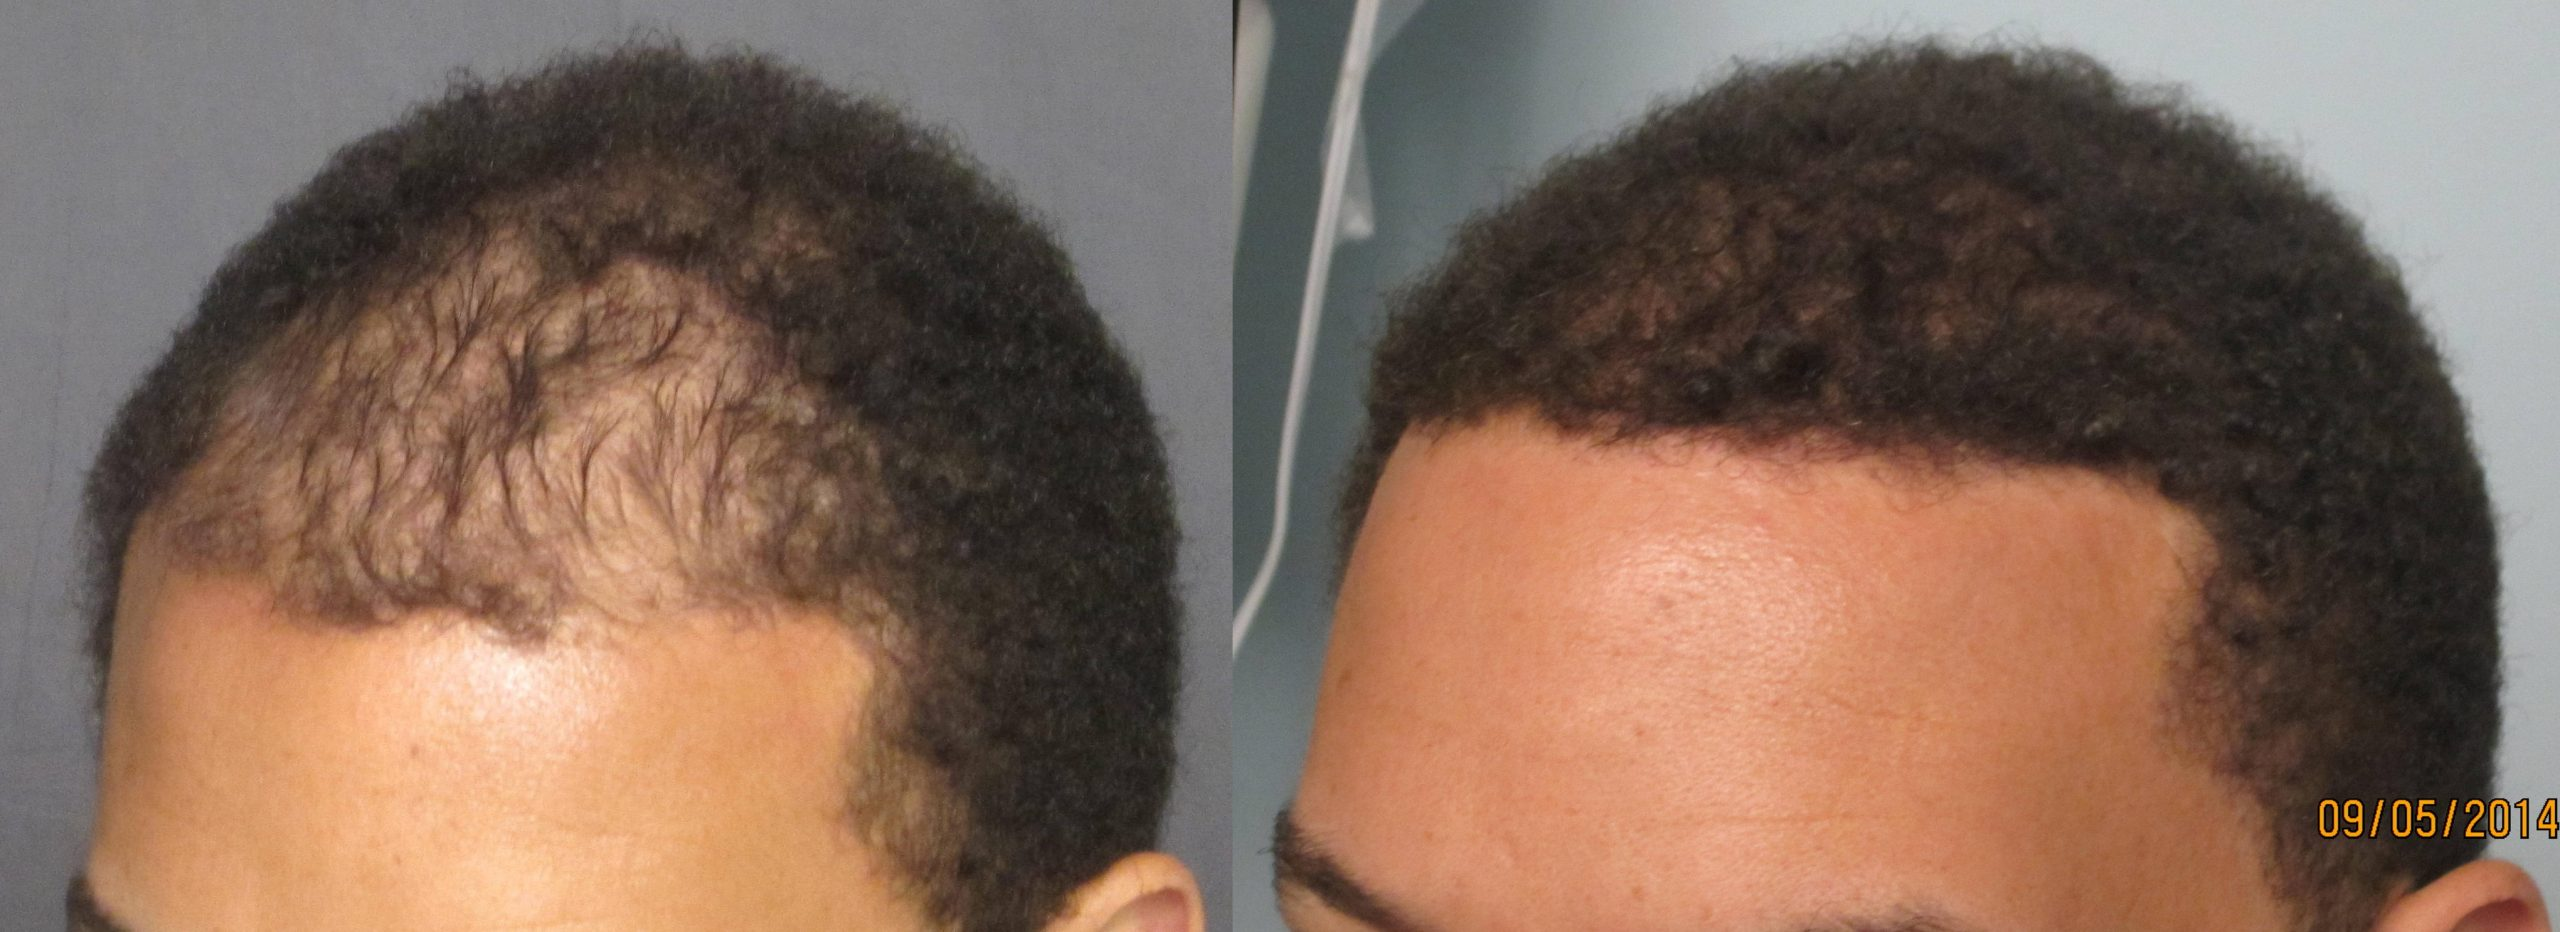 African American hair transplant of the frontal area. Dr. Behnam MD, ABHRS,